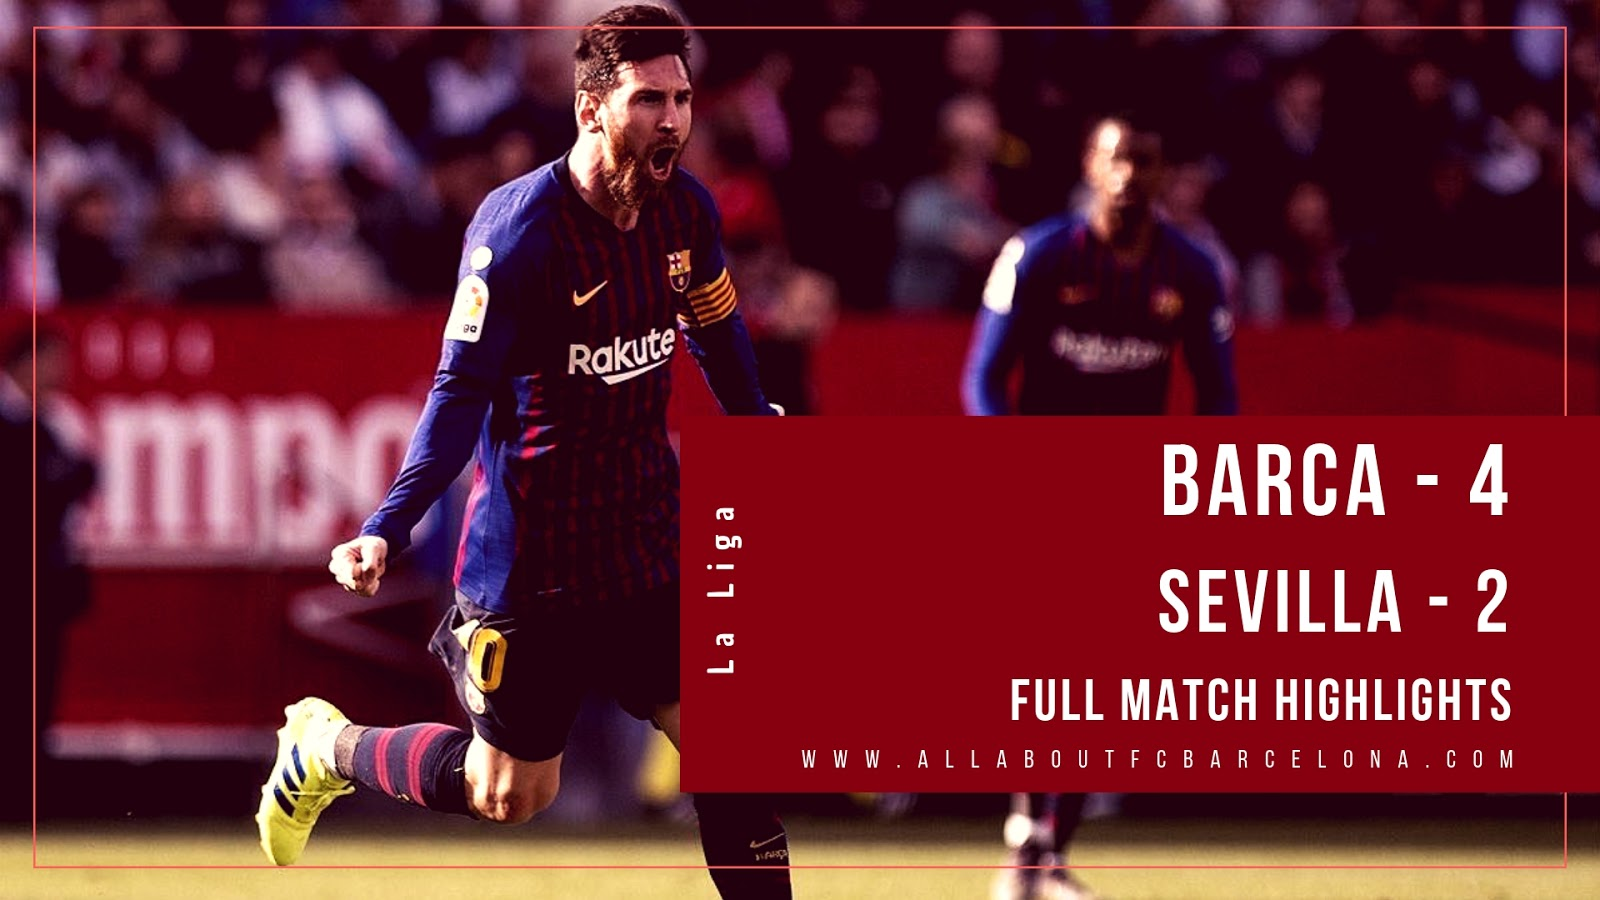 barca vs sevilla match highlights